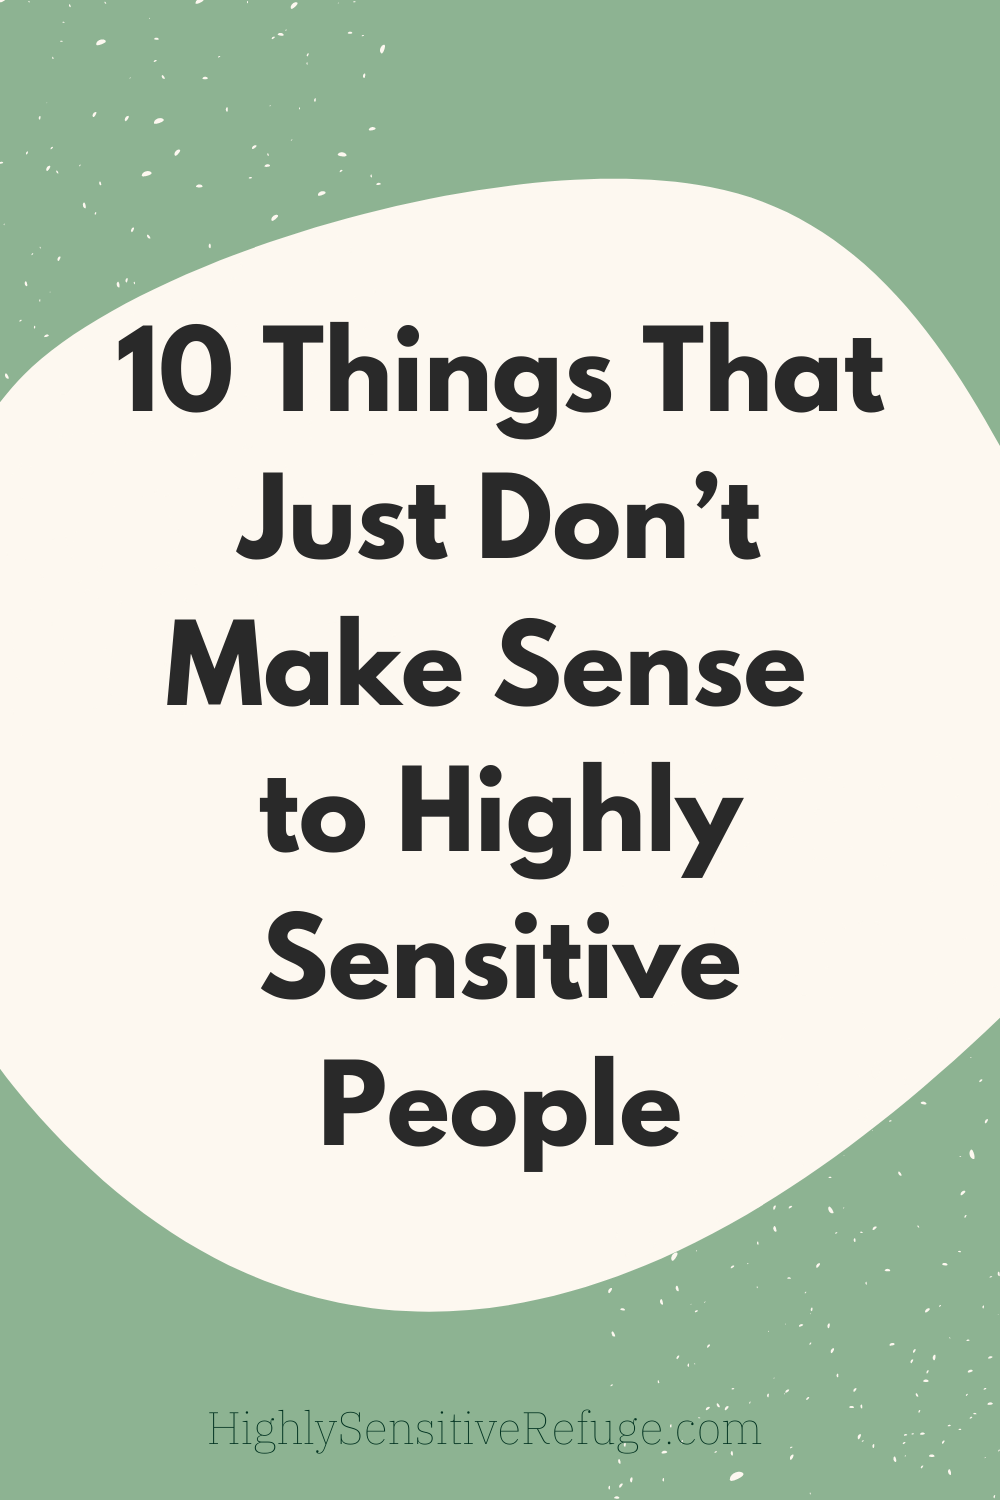 10 Things That Just Don't Make Sense to Highly Sensitive People